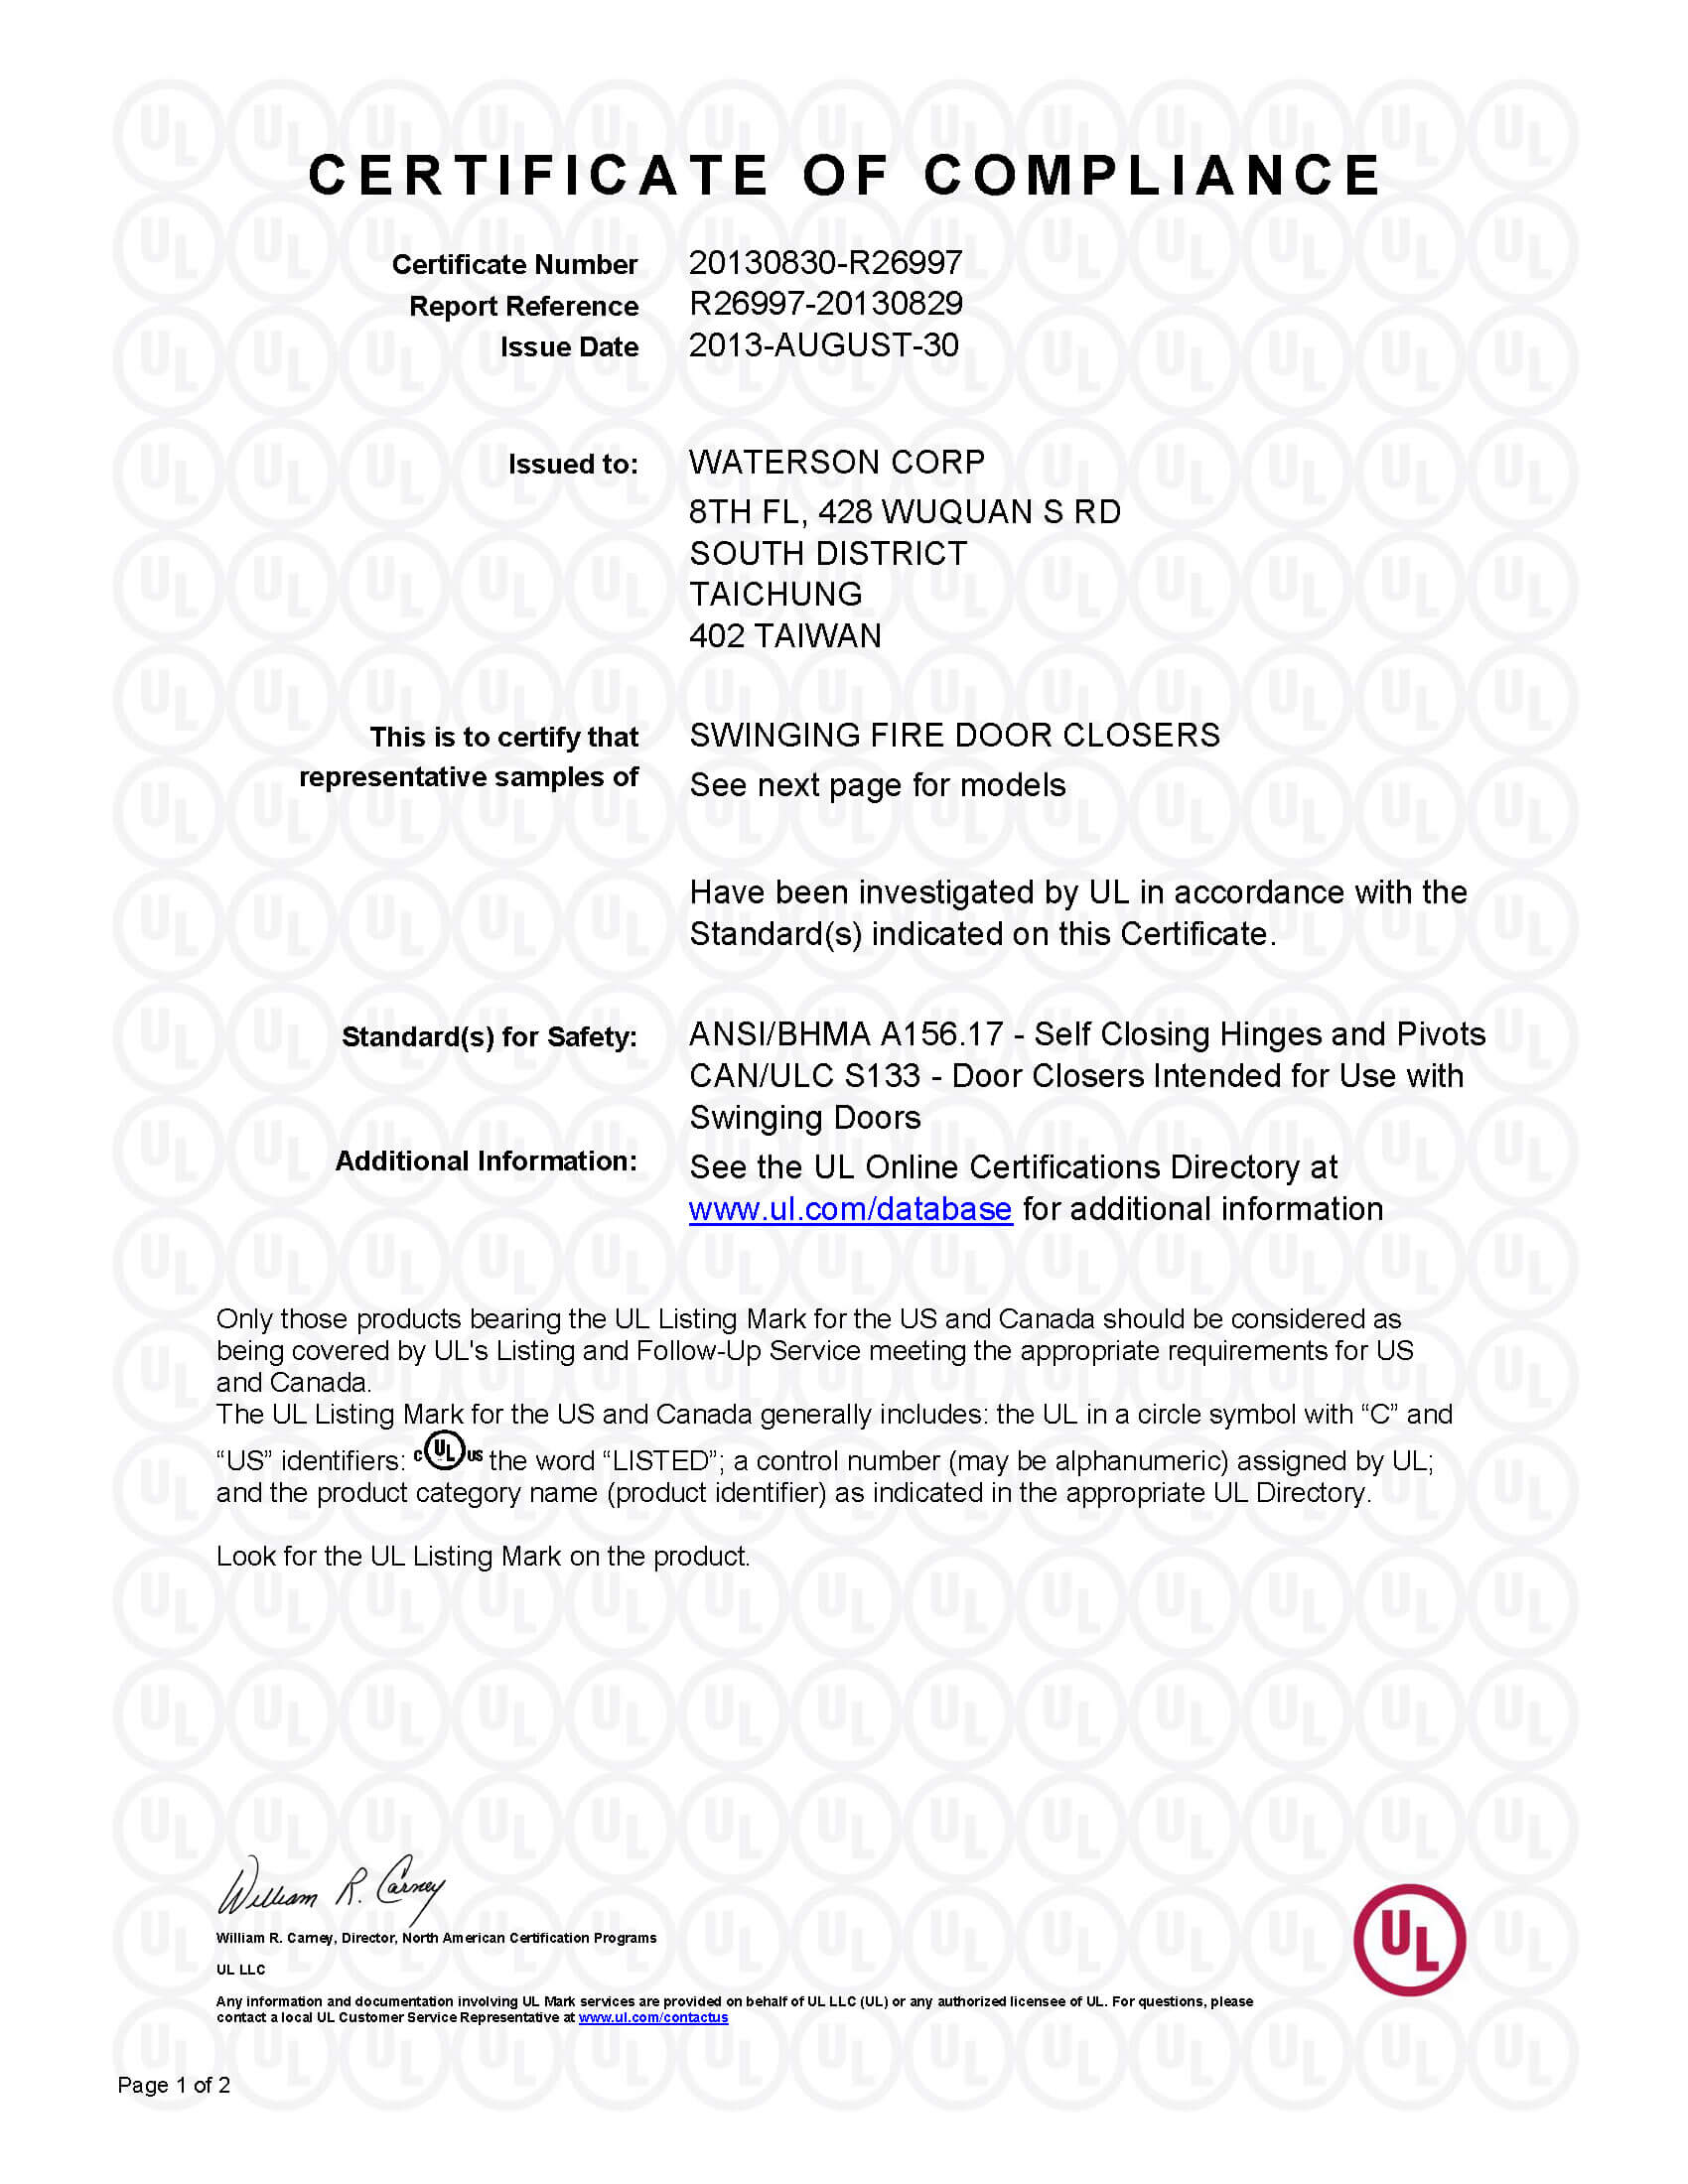 Waterson-UL-CertificateofCompliance1